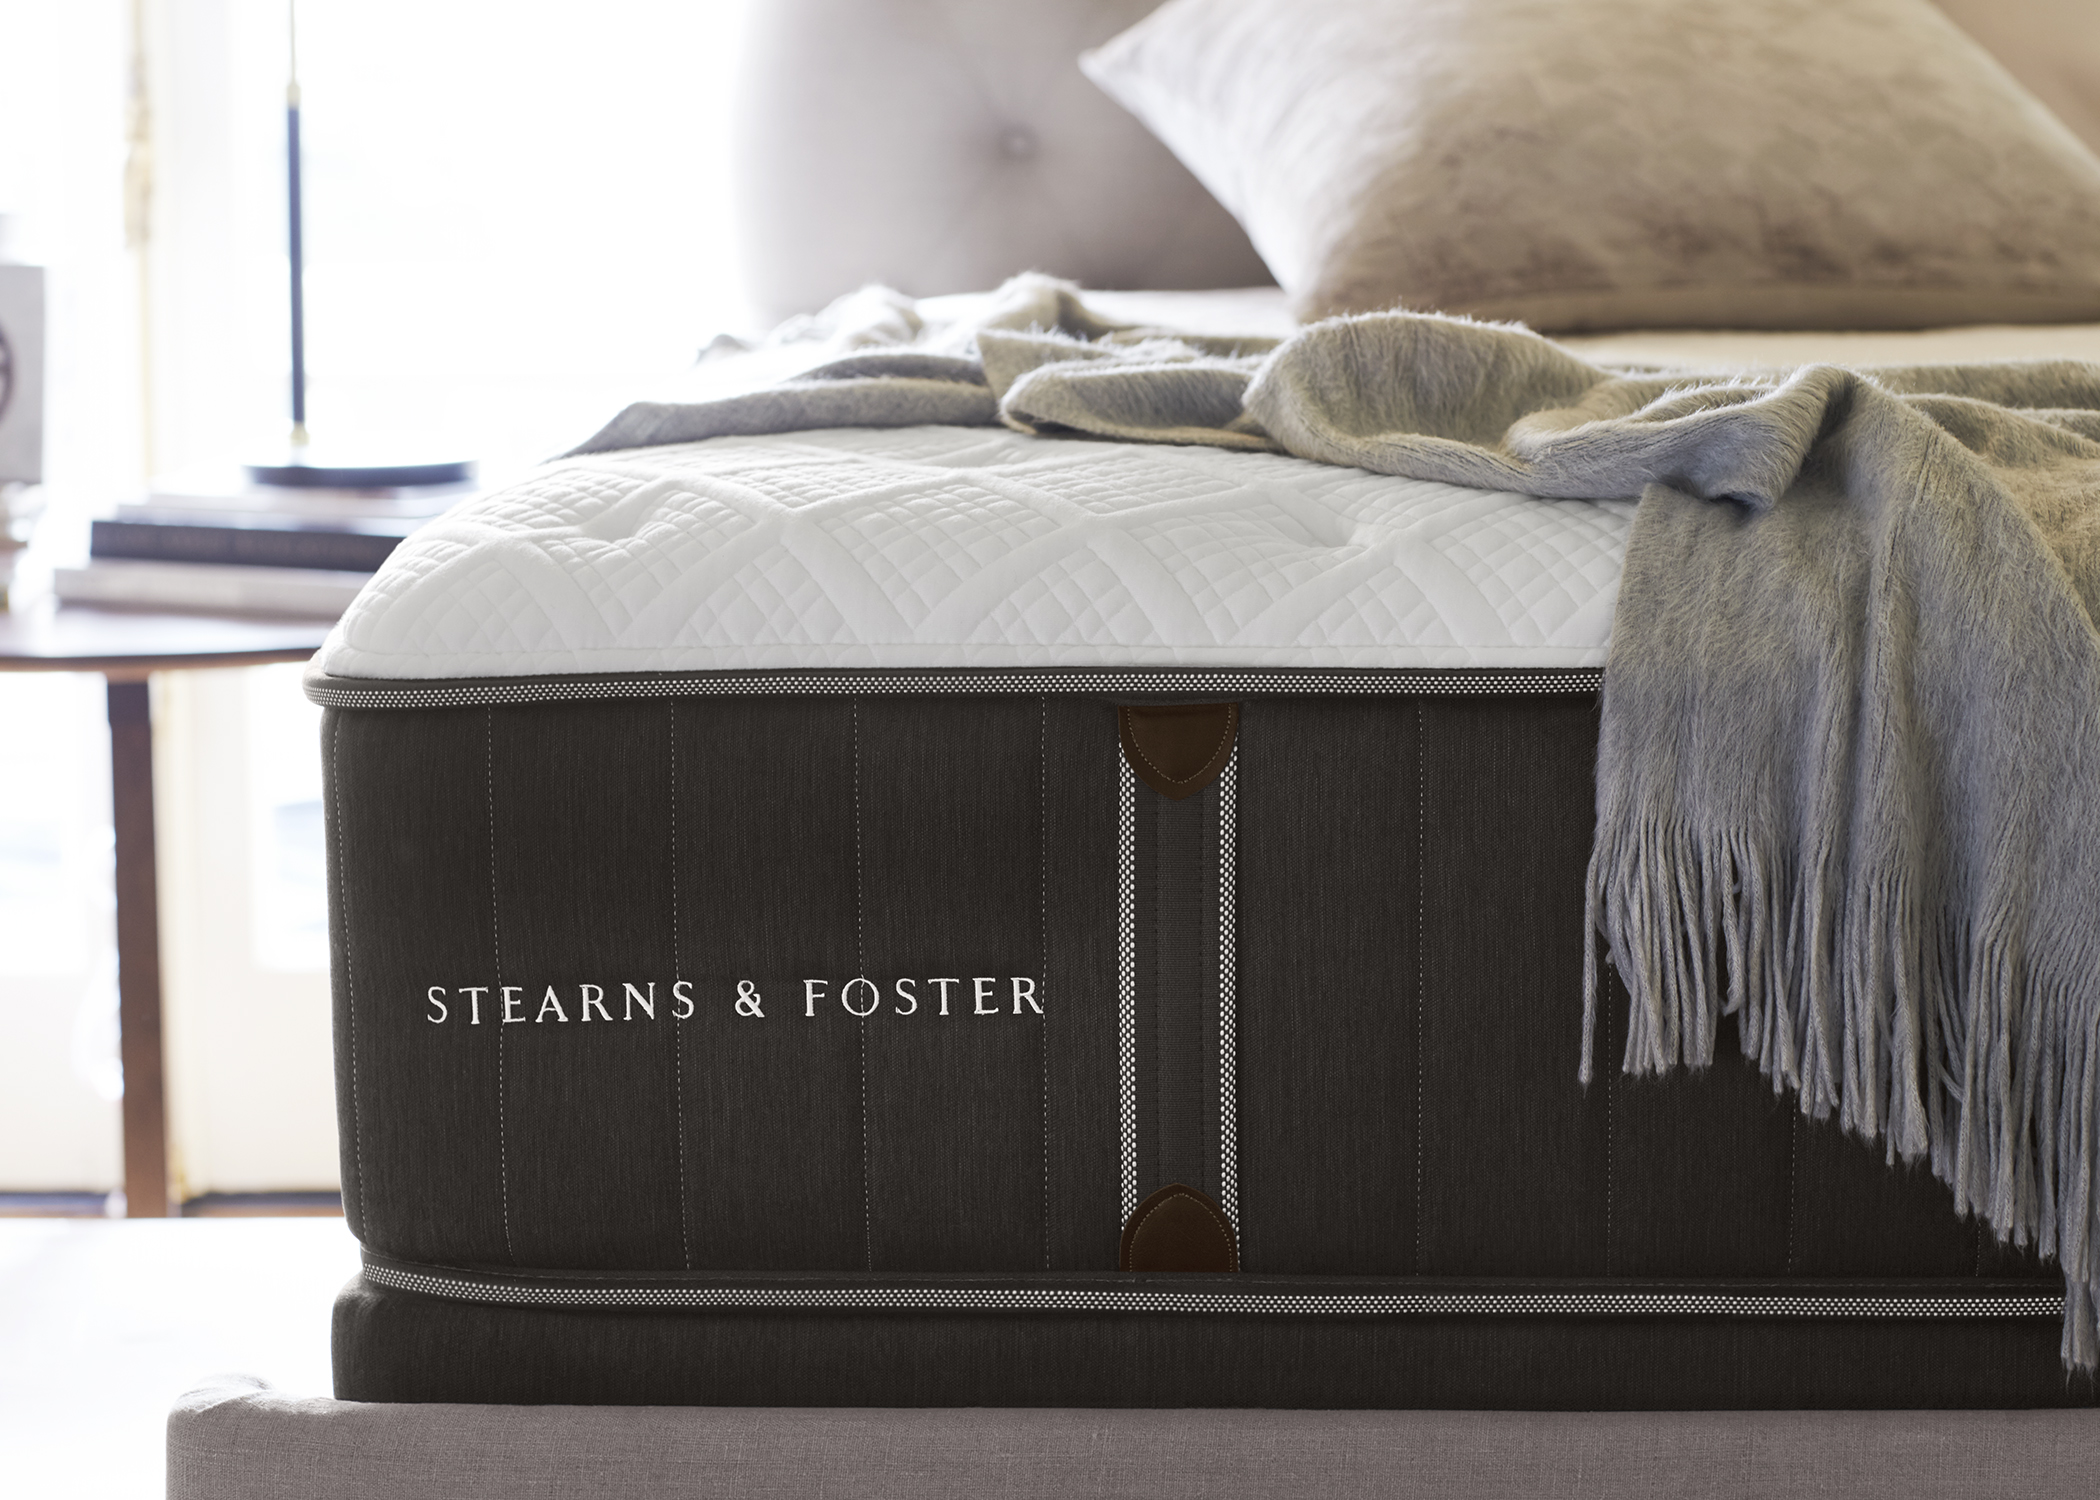 The Stearns & Foster® Luxury Estate Collection Image